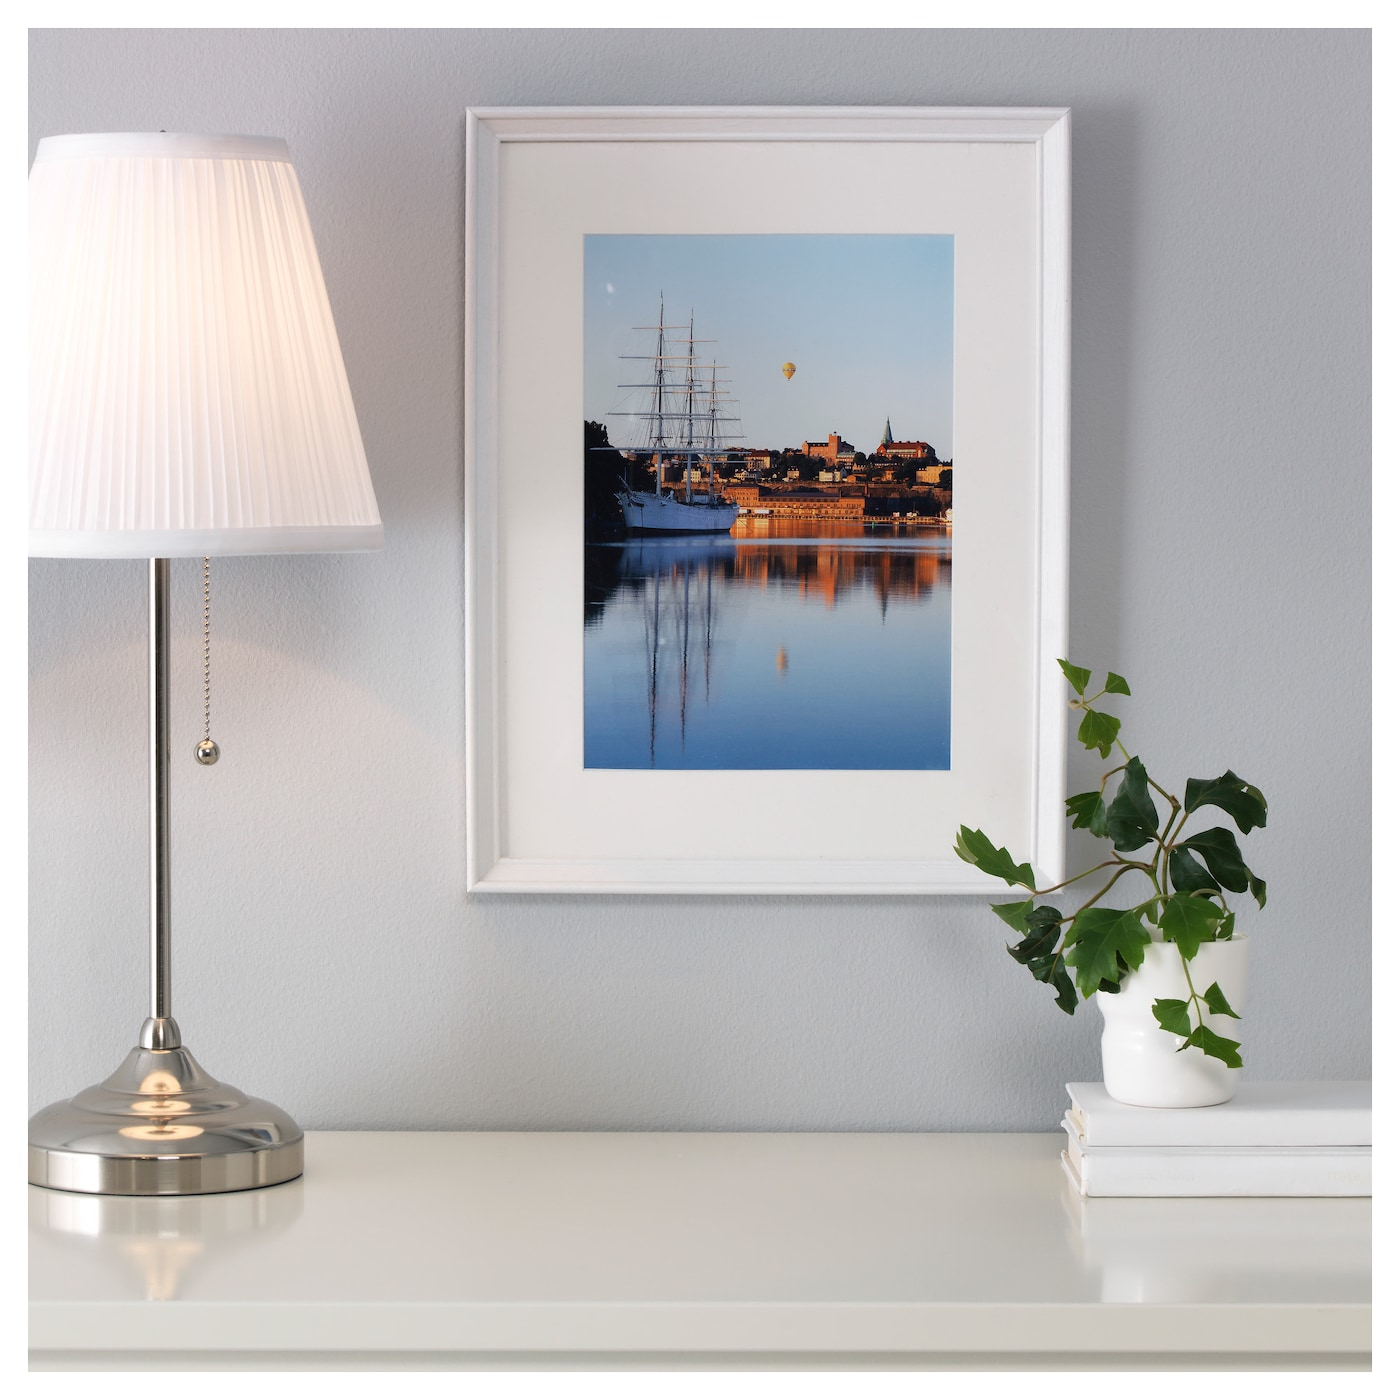 IKEA KNOPPÄNG frame Can be hung horizontally or vertically to fit in the space available.